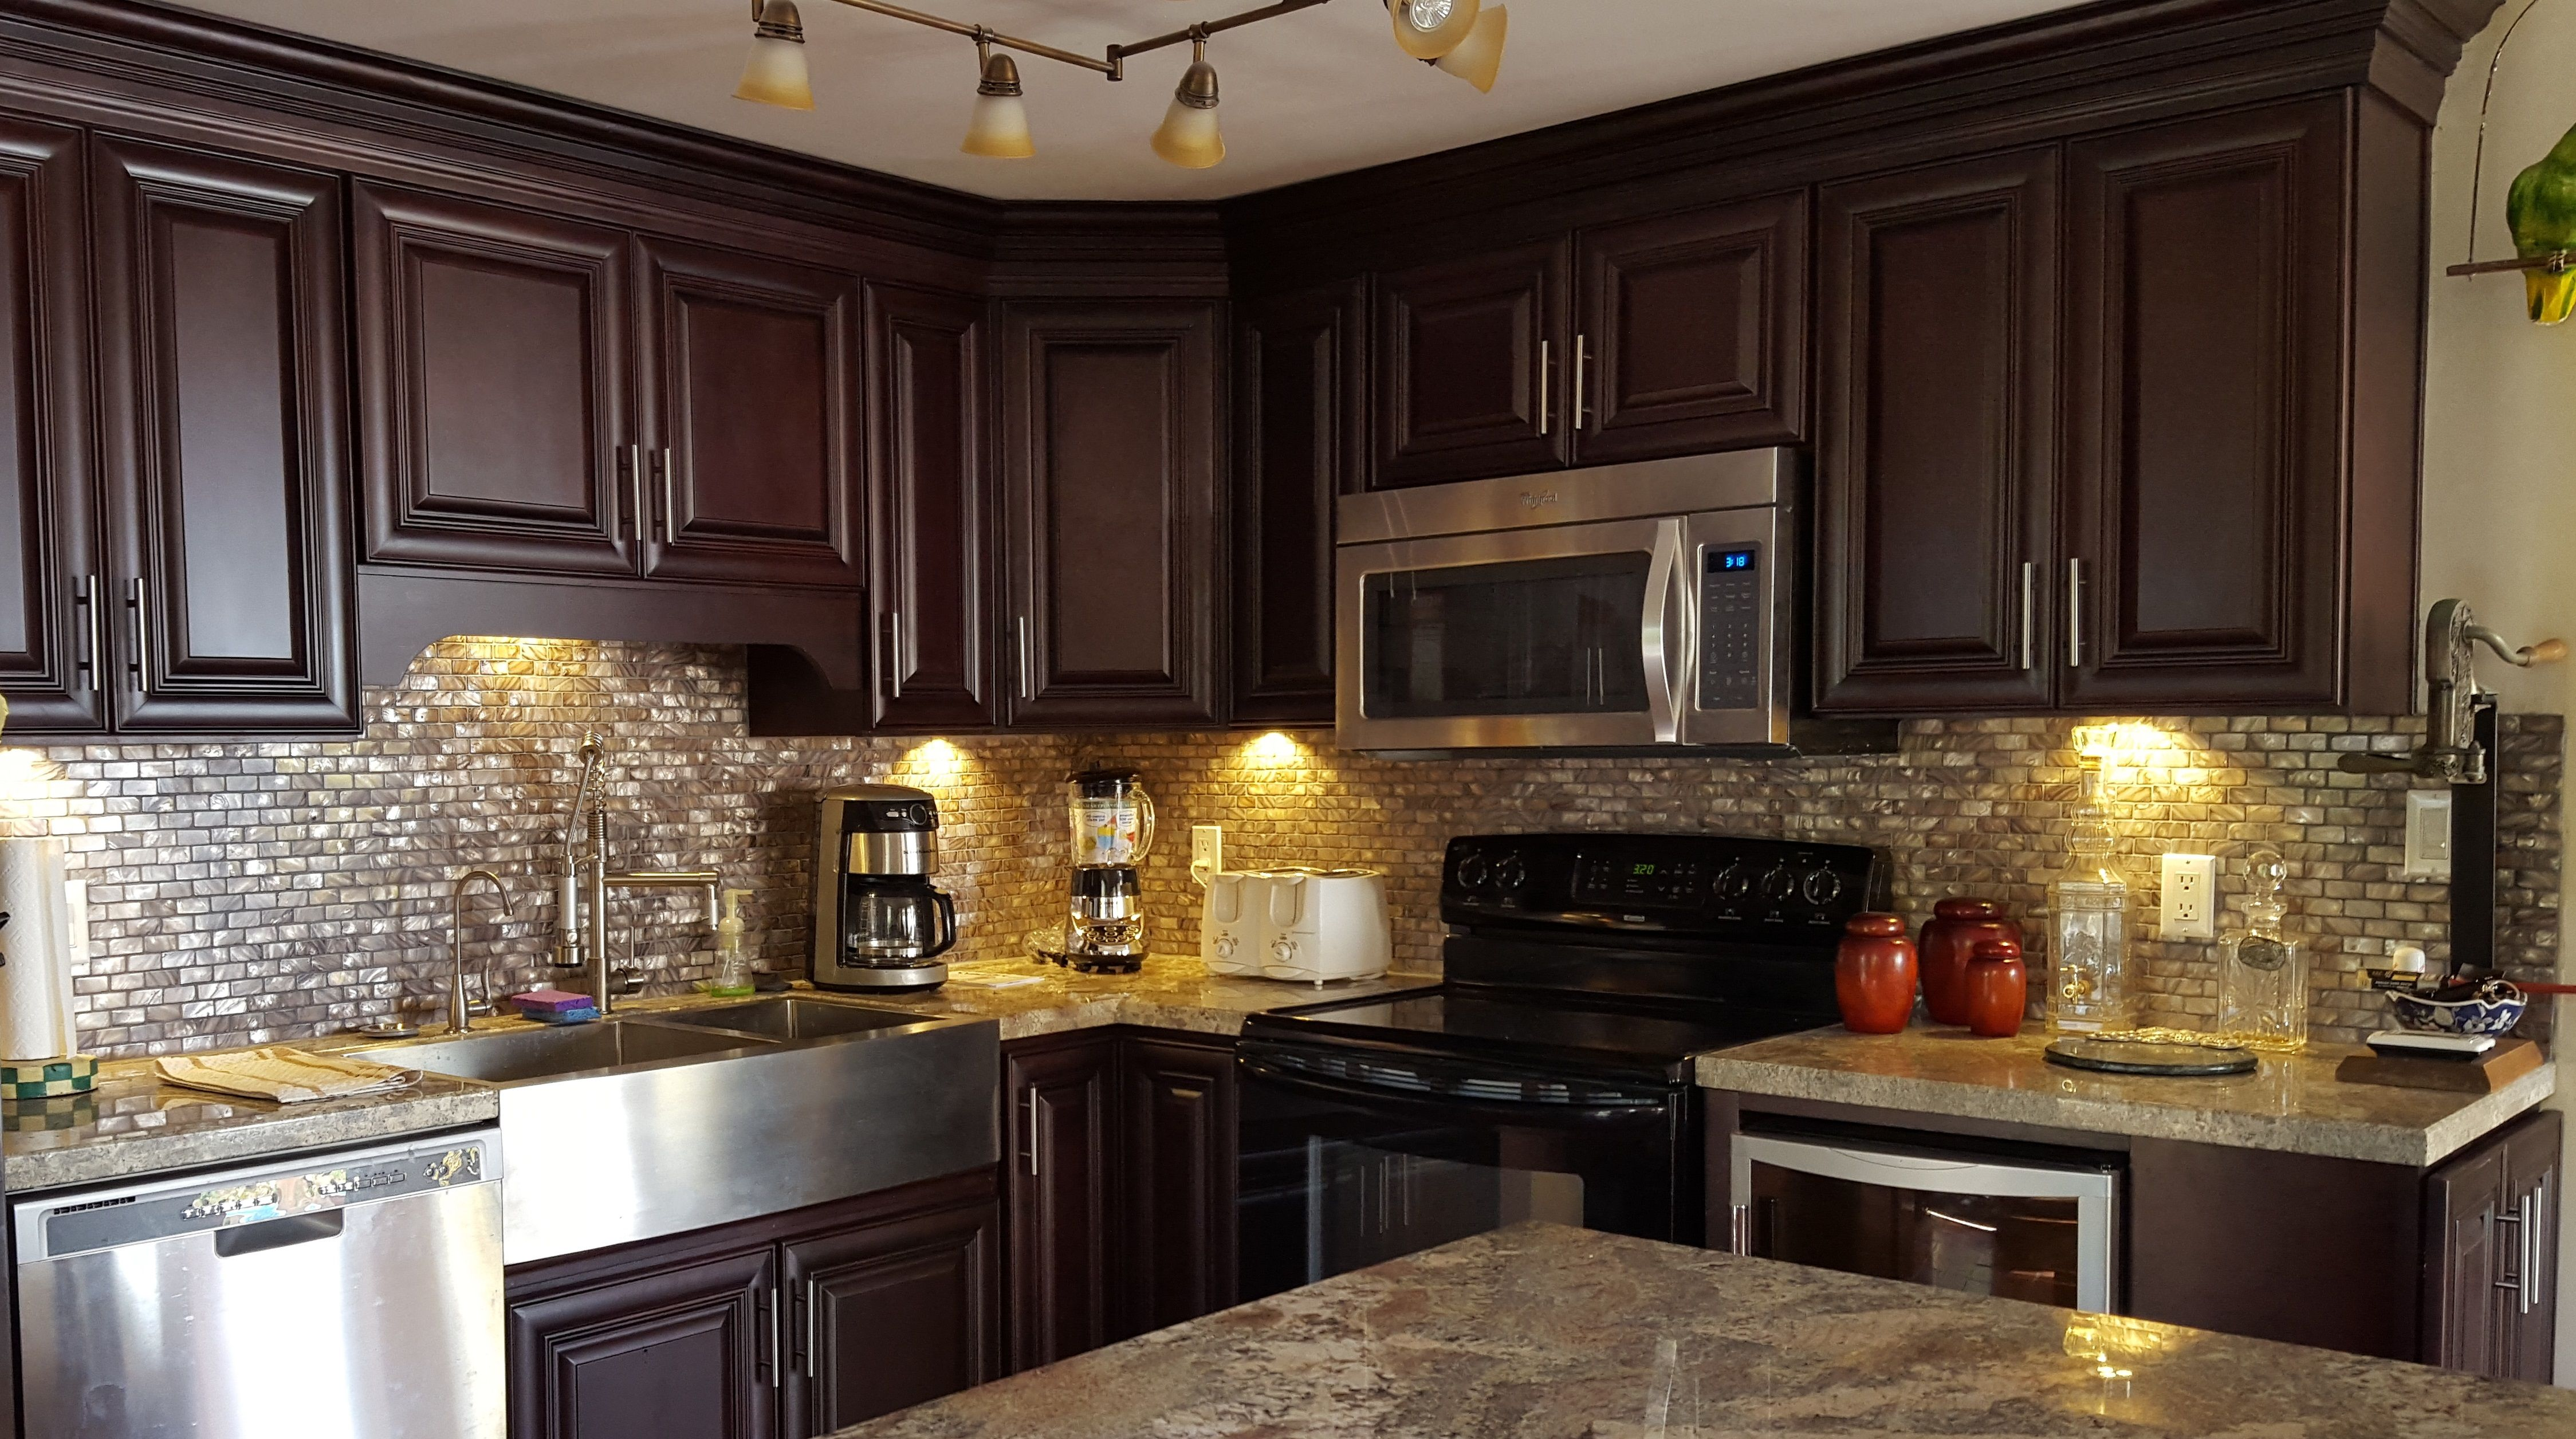 Sonoma Merlot Kitchen Cabinets What Would You Cook In This Kitchen Repin Kitchen Cab Cost Of Kitchen Cabinets Kitchen Cabinet Kings Kitchen Cabinet Styles